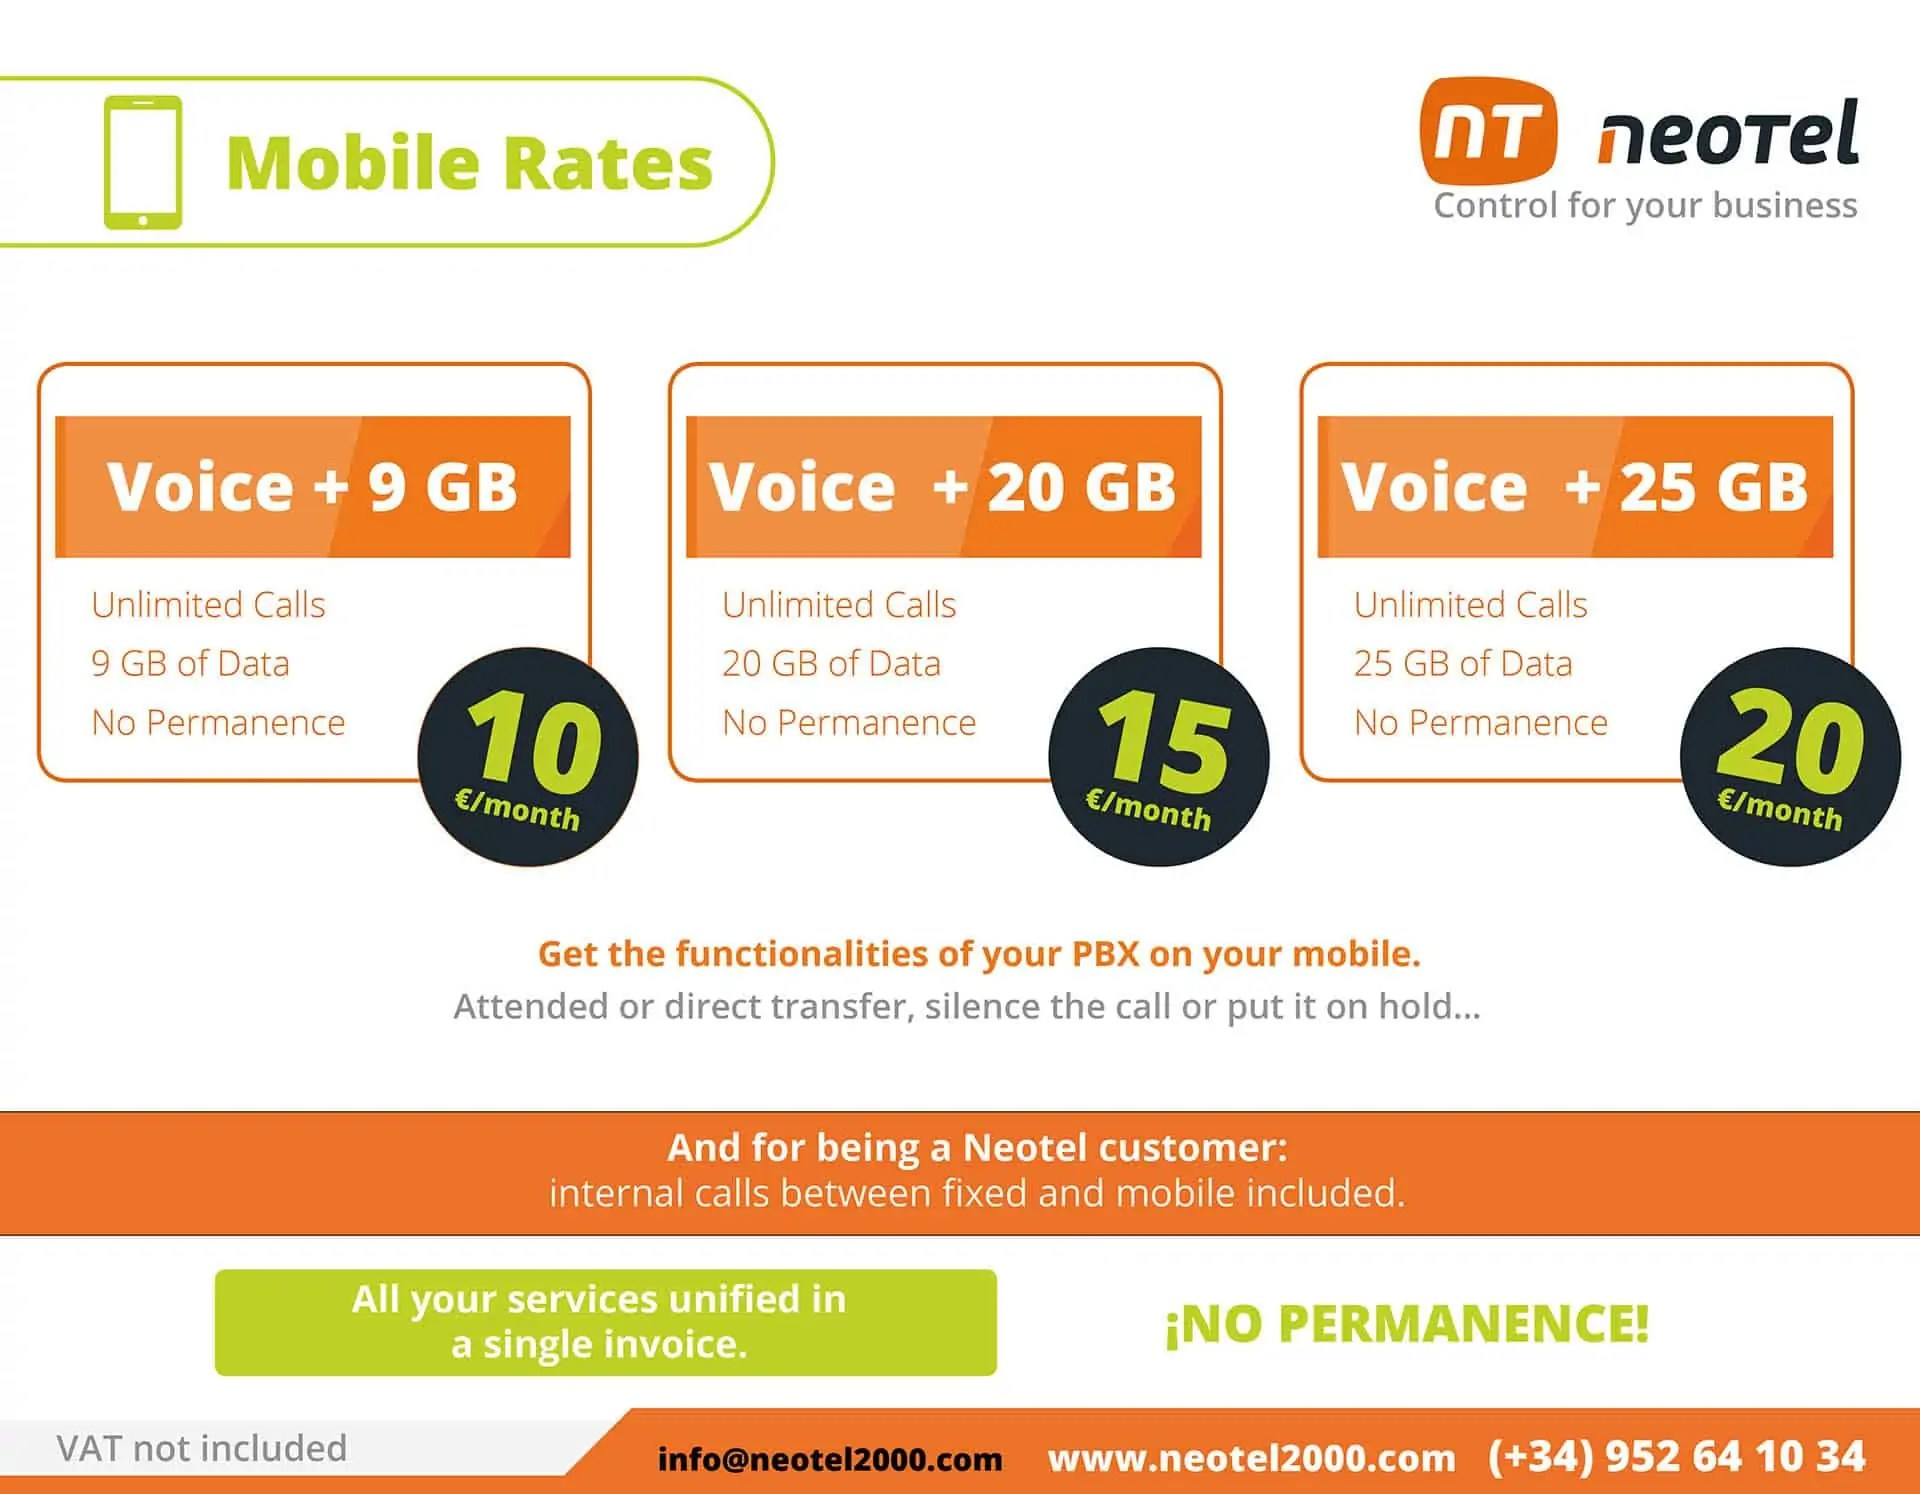 mobile rates